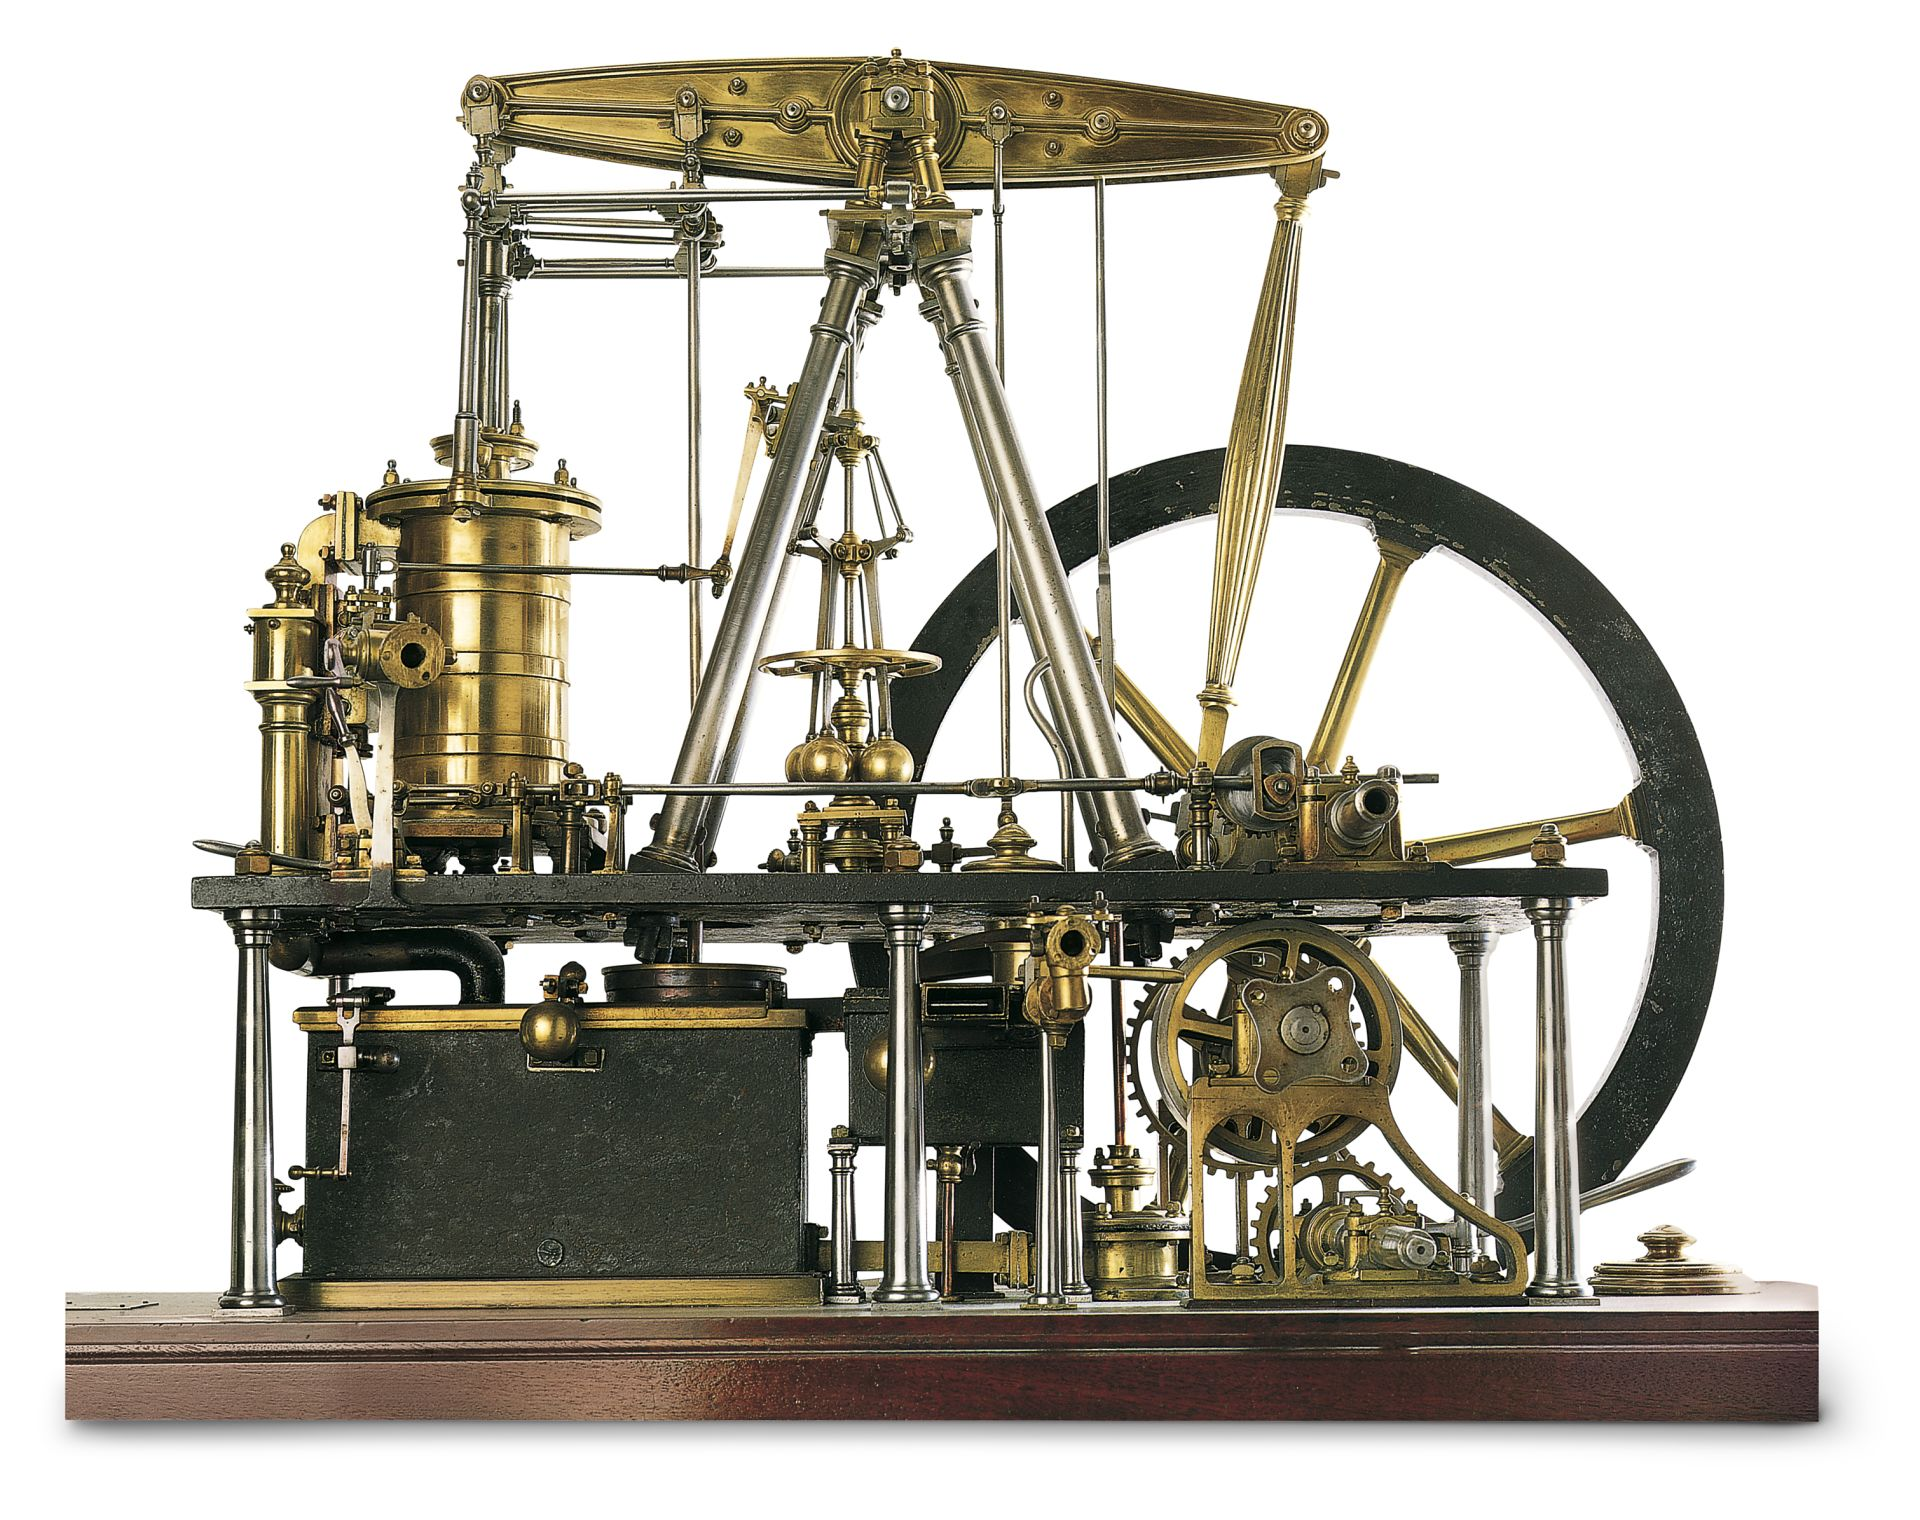 Invention Of The Steam Engine | DK Find Out